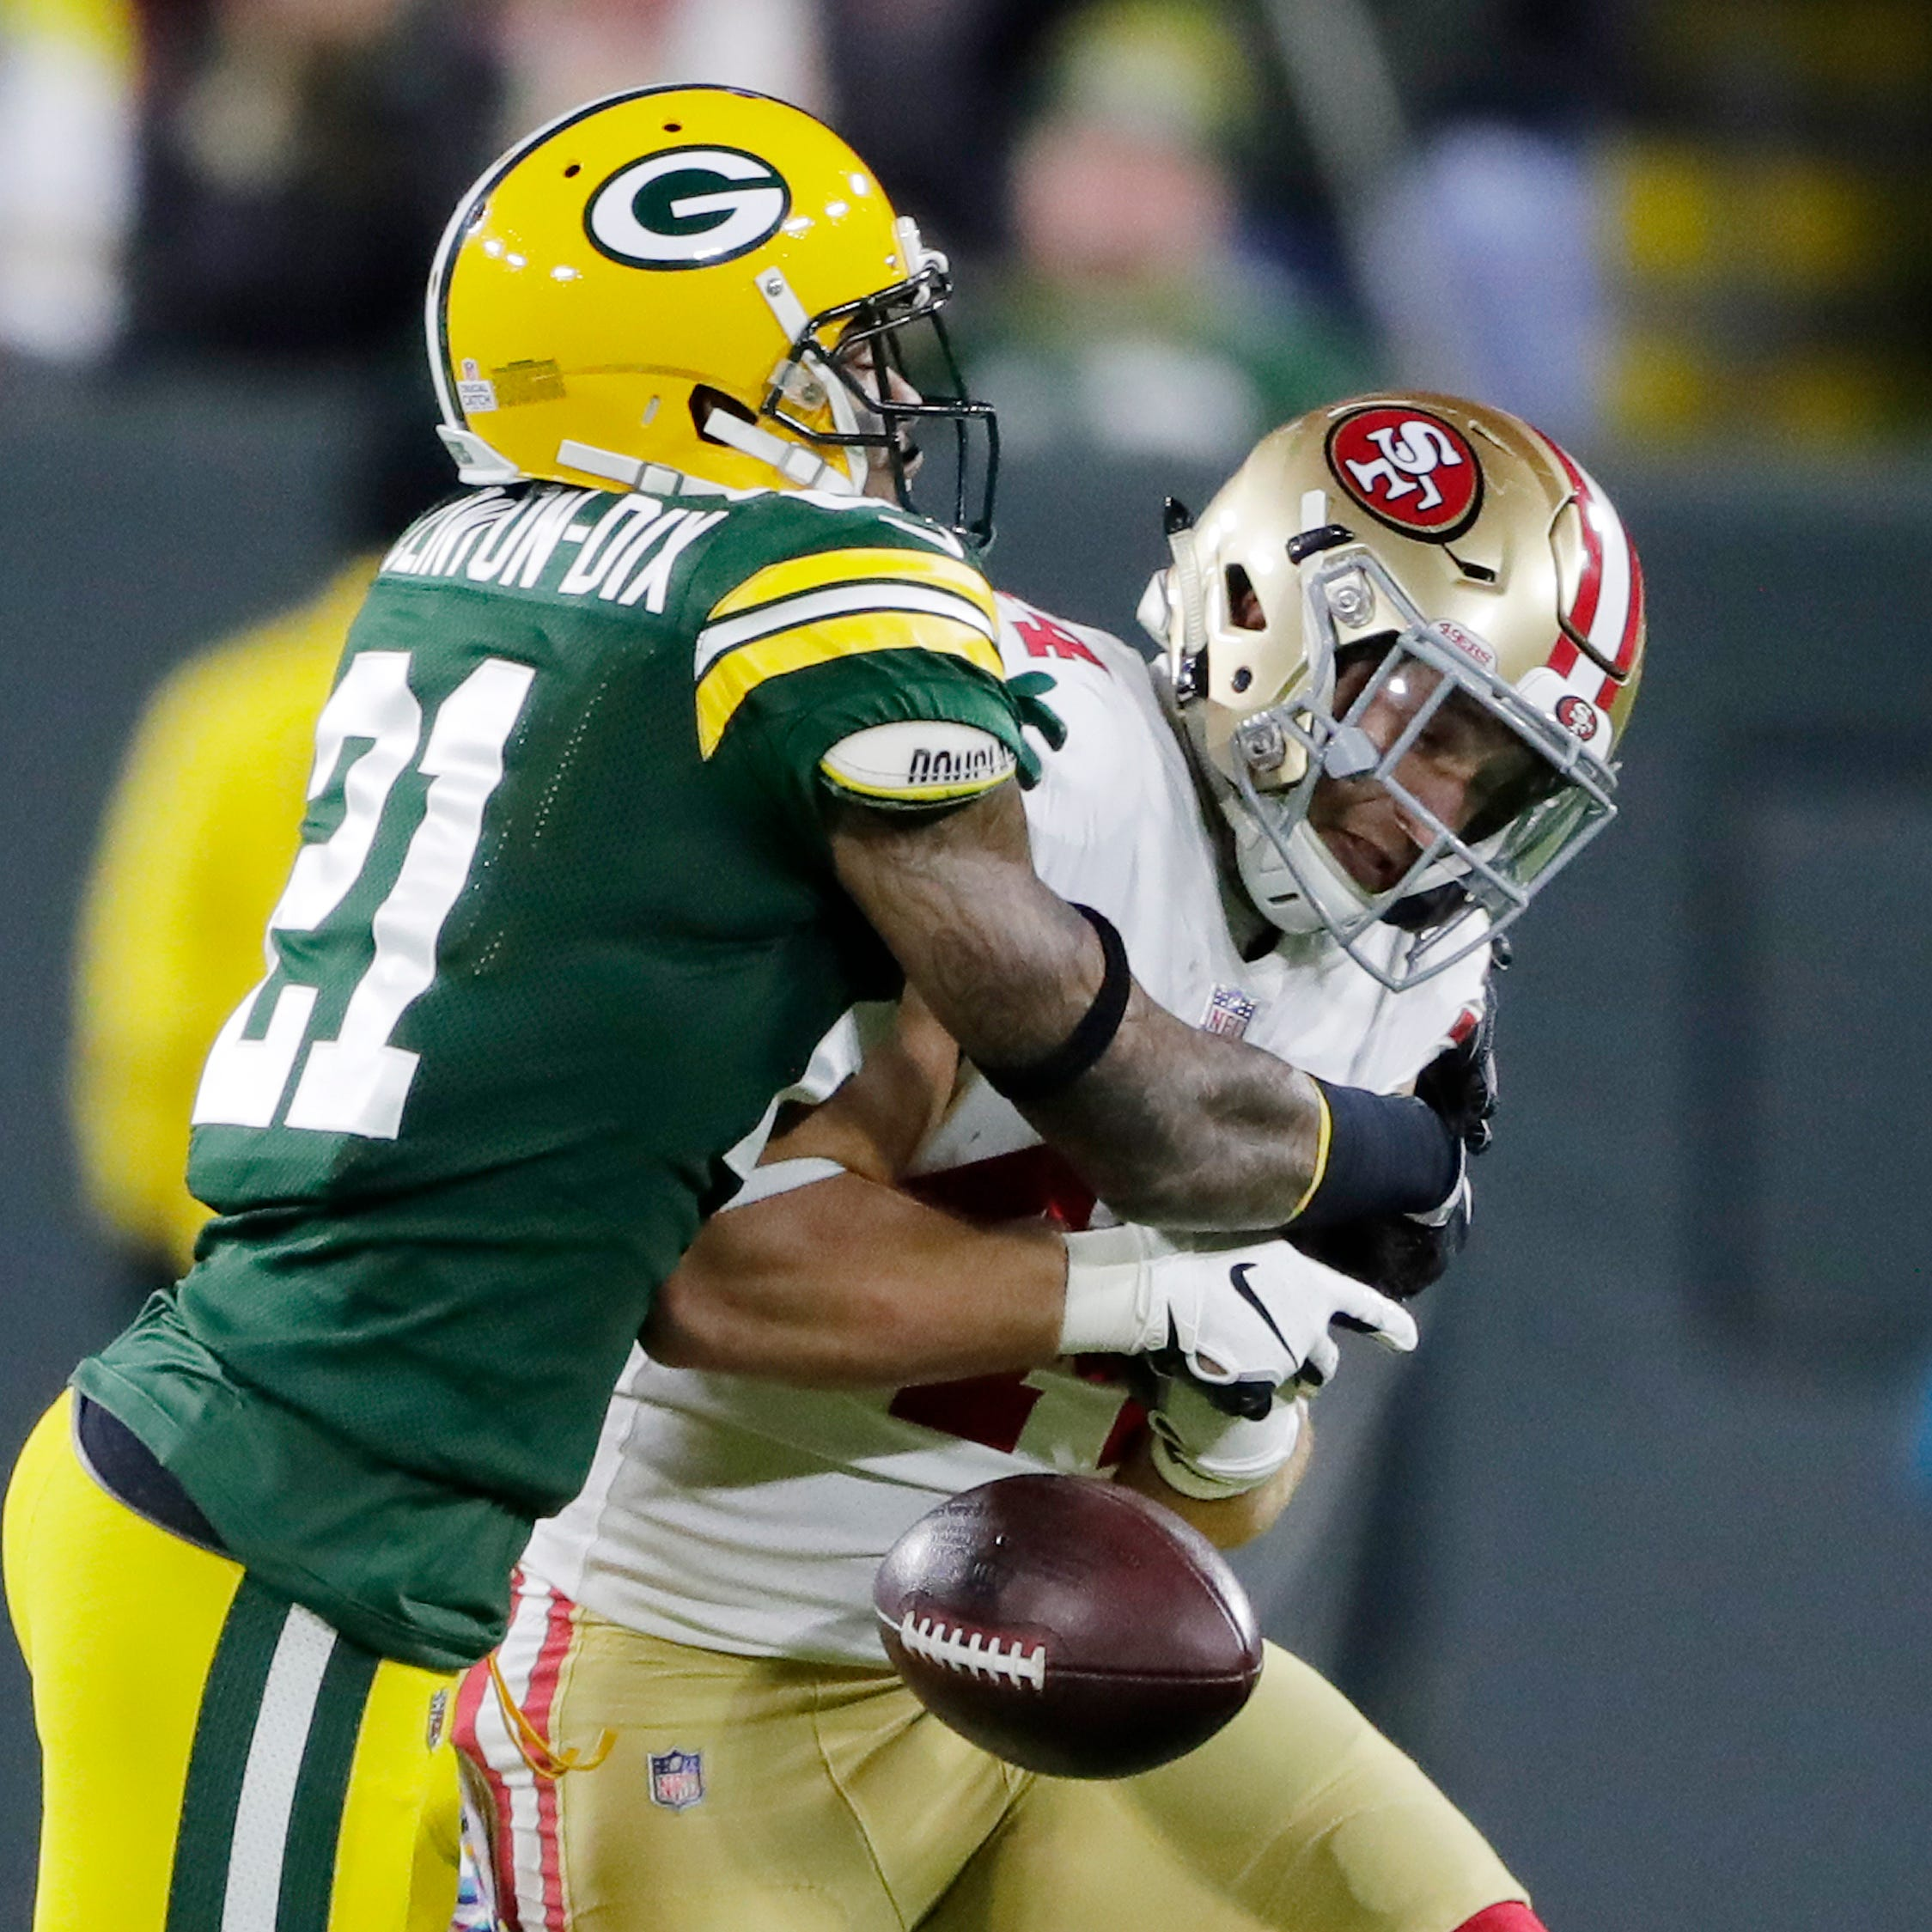 Green Bay Packers free safety Ha Ha Clinton-Dix (21) knocks the ball out of the arms of San Francisco 49ers running back Kyle Juszczyk (44) in the second quarter at Lambeau Field on Monday, October 15, 2018 in Green Bay, Wis.Adam Wesley/USA TODAY NETWORK-Wisconsin